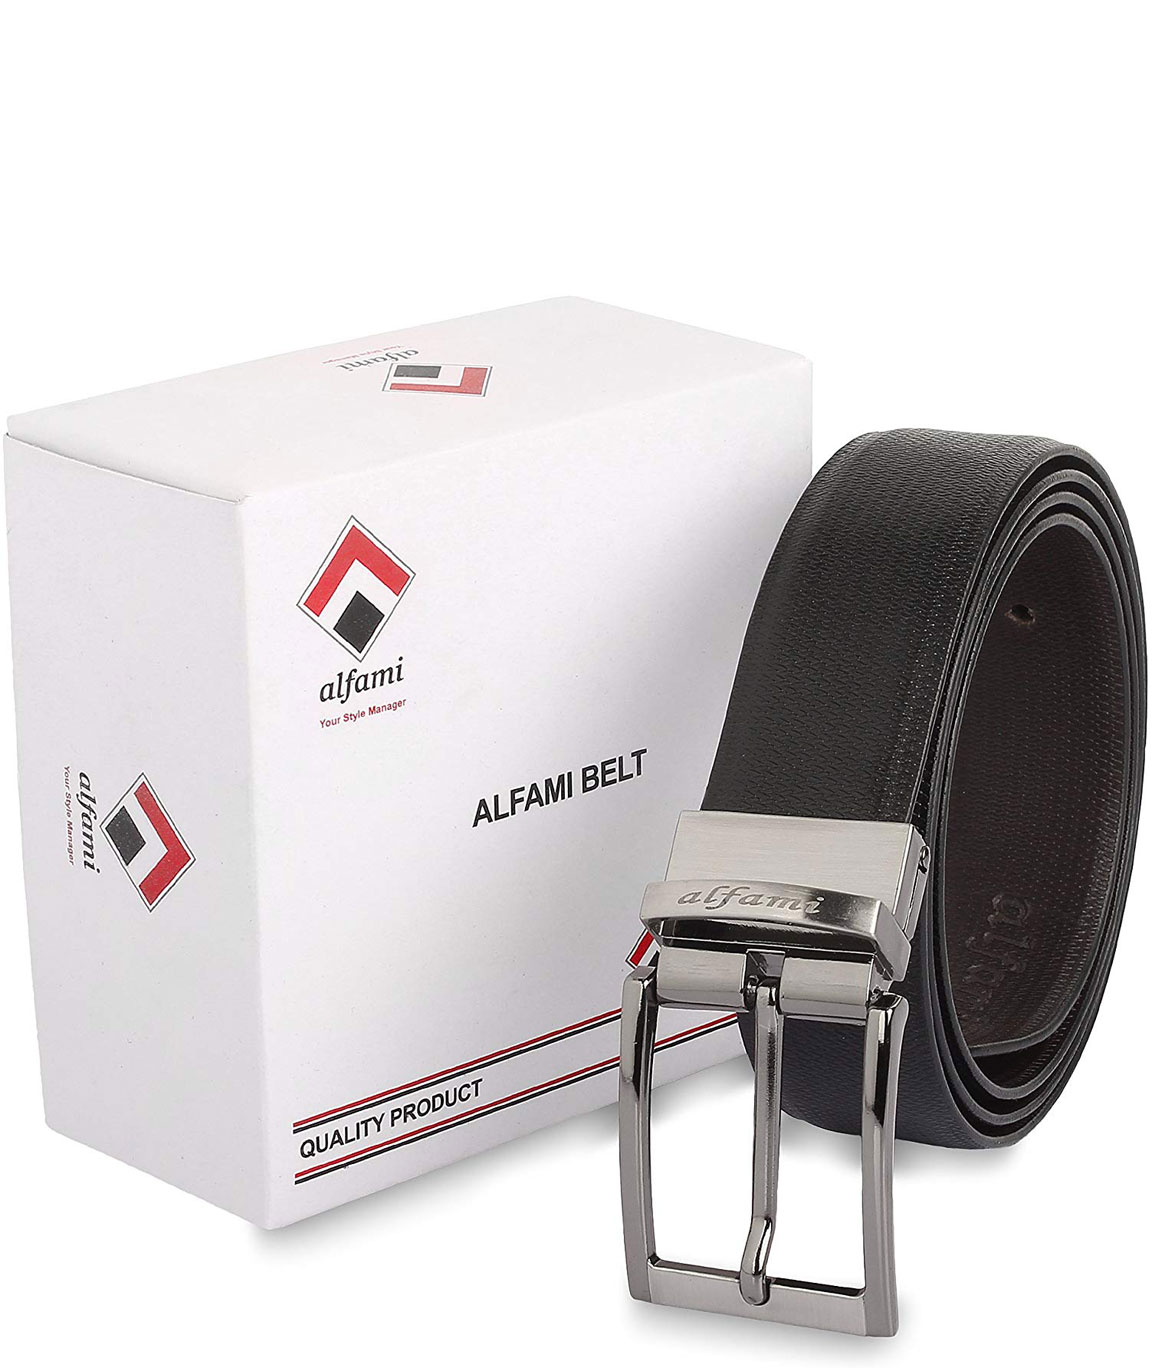 Urban Alfami Mens/Gents/Boys Genuine Leather Reversible Belt | Black/Brown | Formal/Casual/Party Wear | All Sizes | 1 Year Replacement Warranty